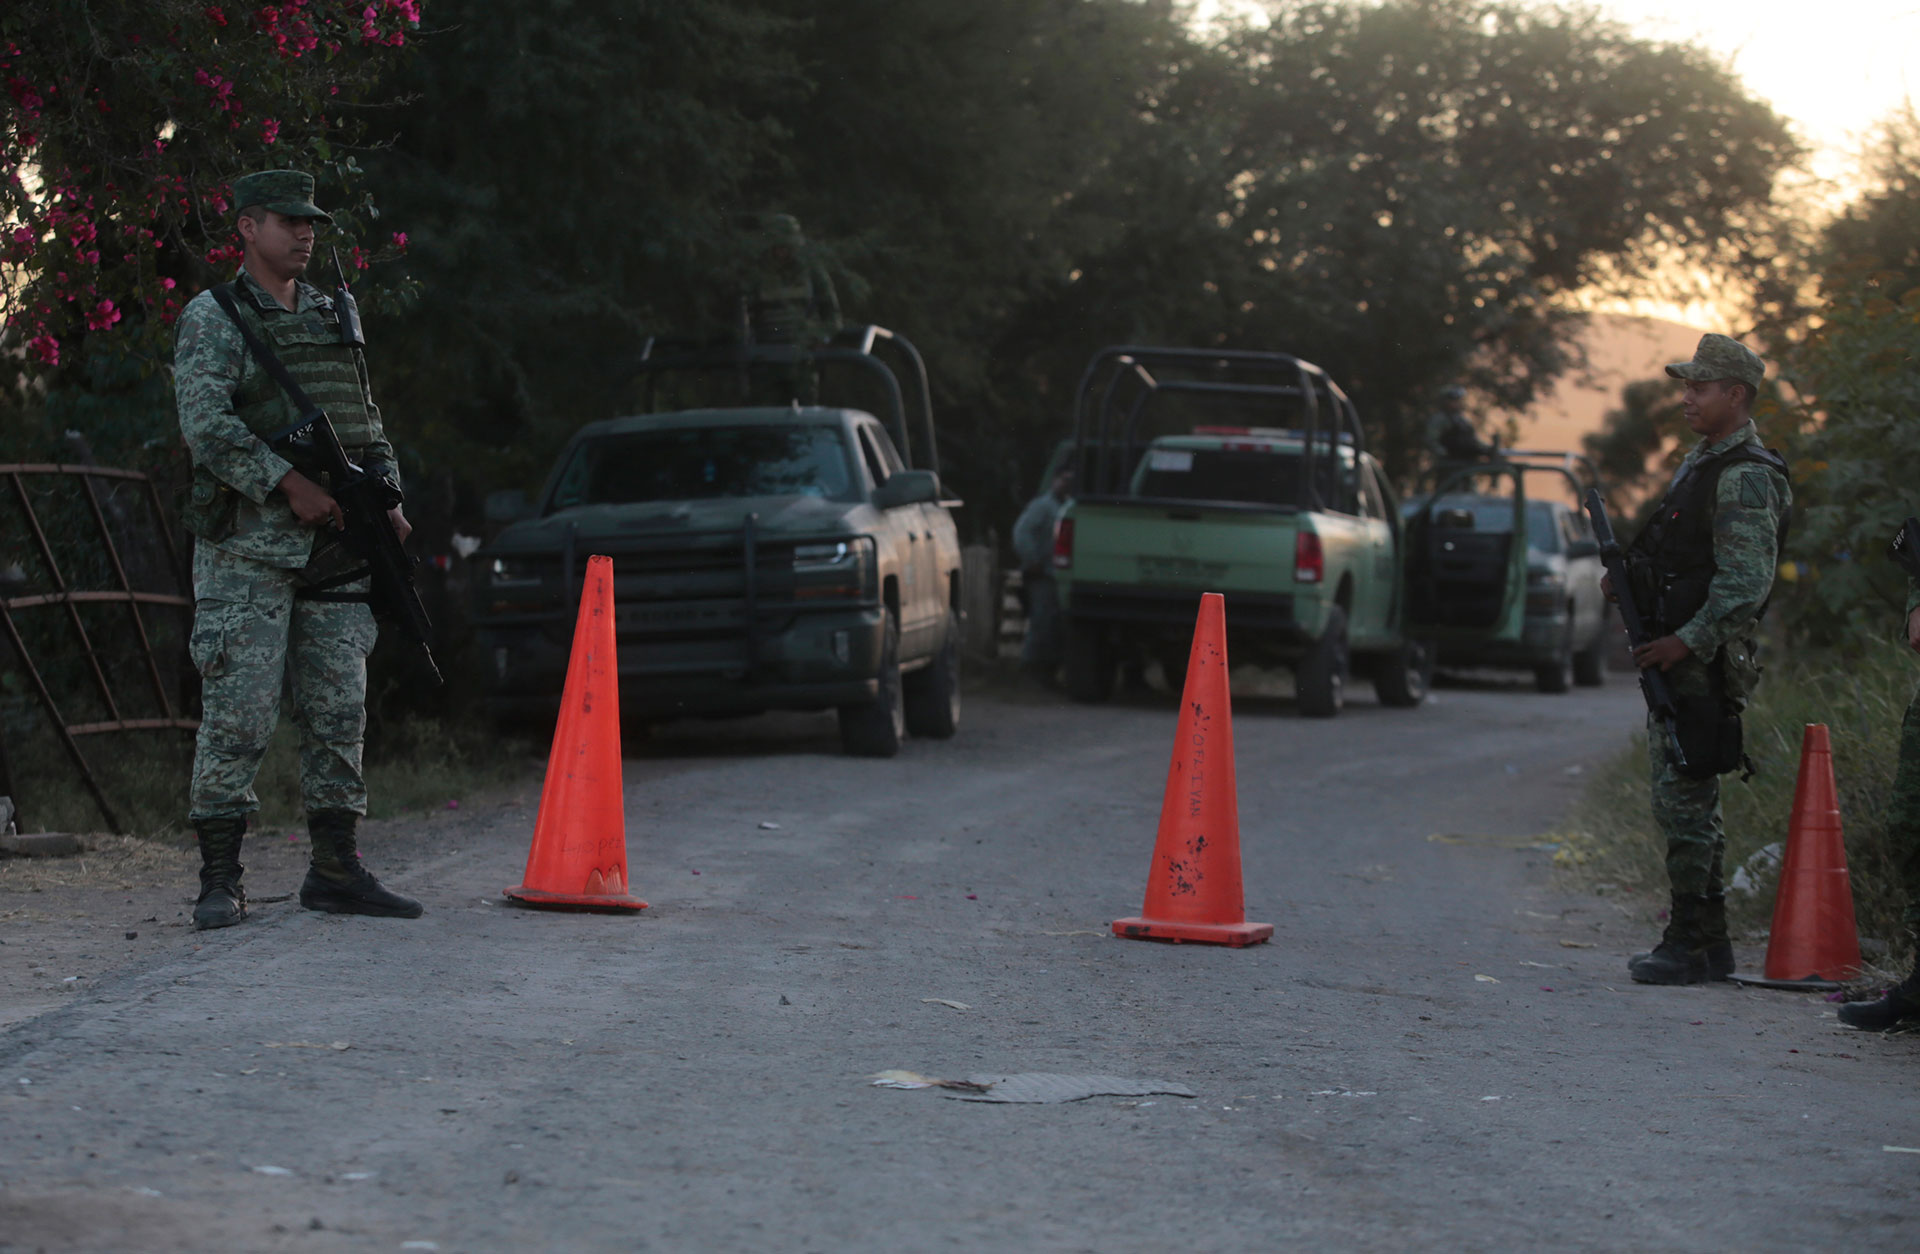 Mexico's drug cartels, now hooked on fuel, cripple nation's